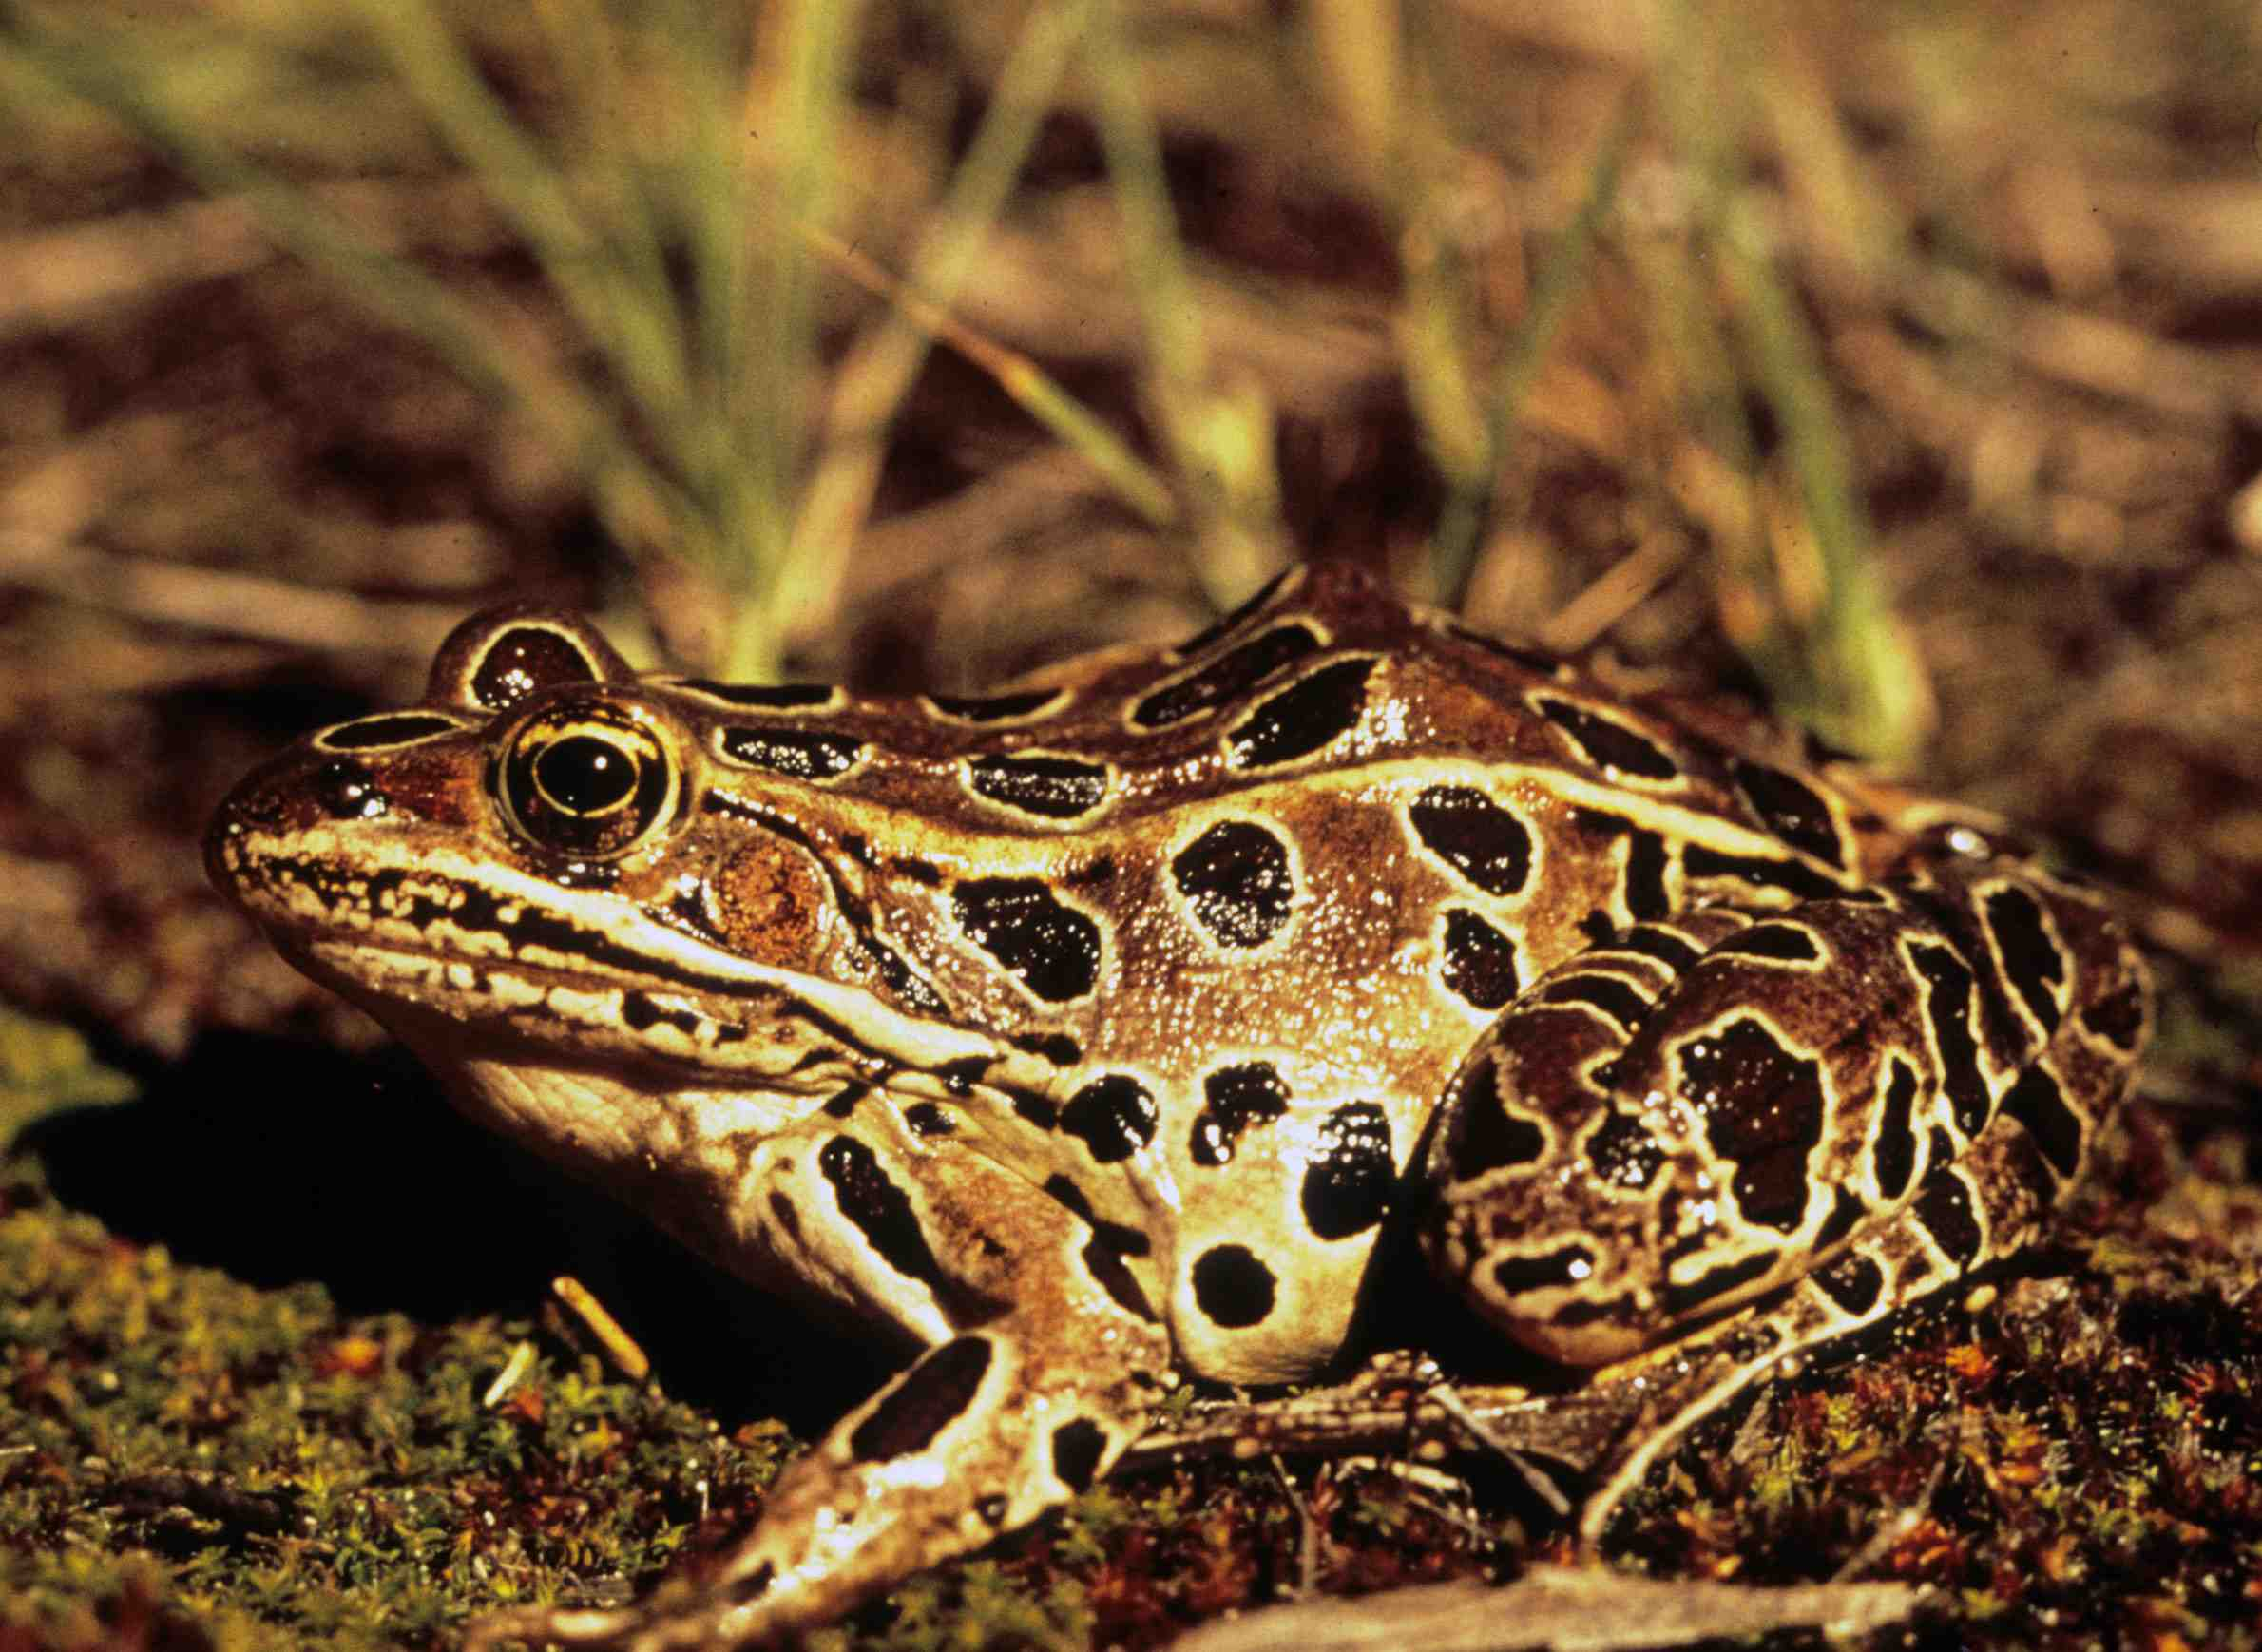 Northern leopard frog. Photo from the Wisconsin Department of Natural Resources (CC BY-ND 2.0).